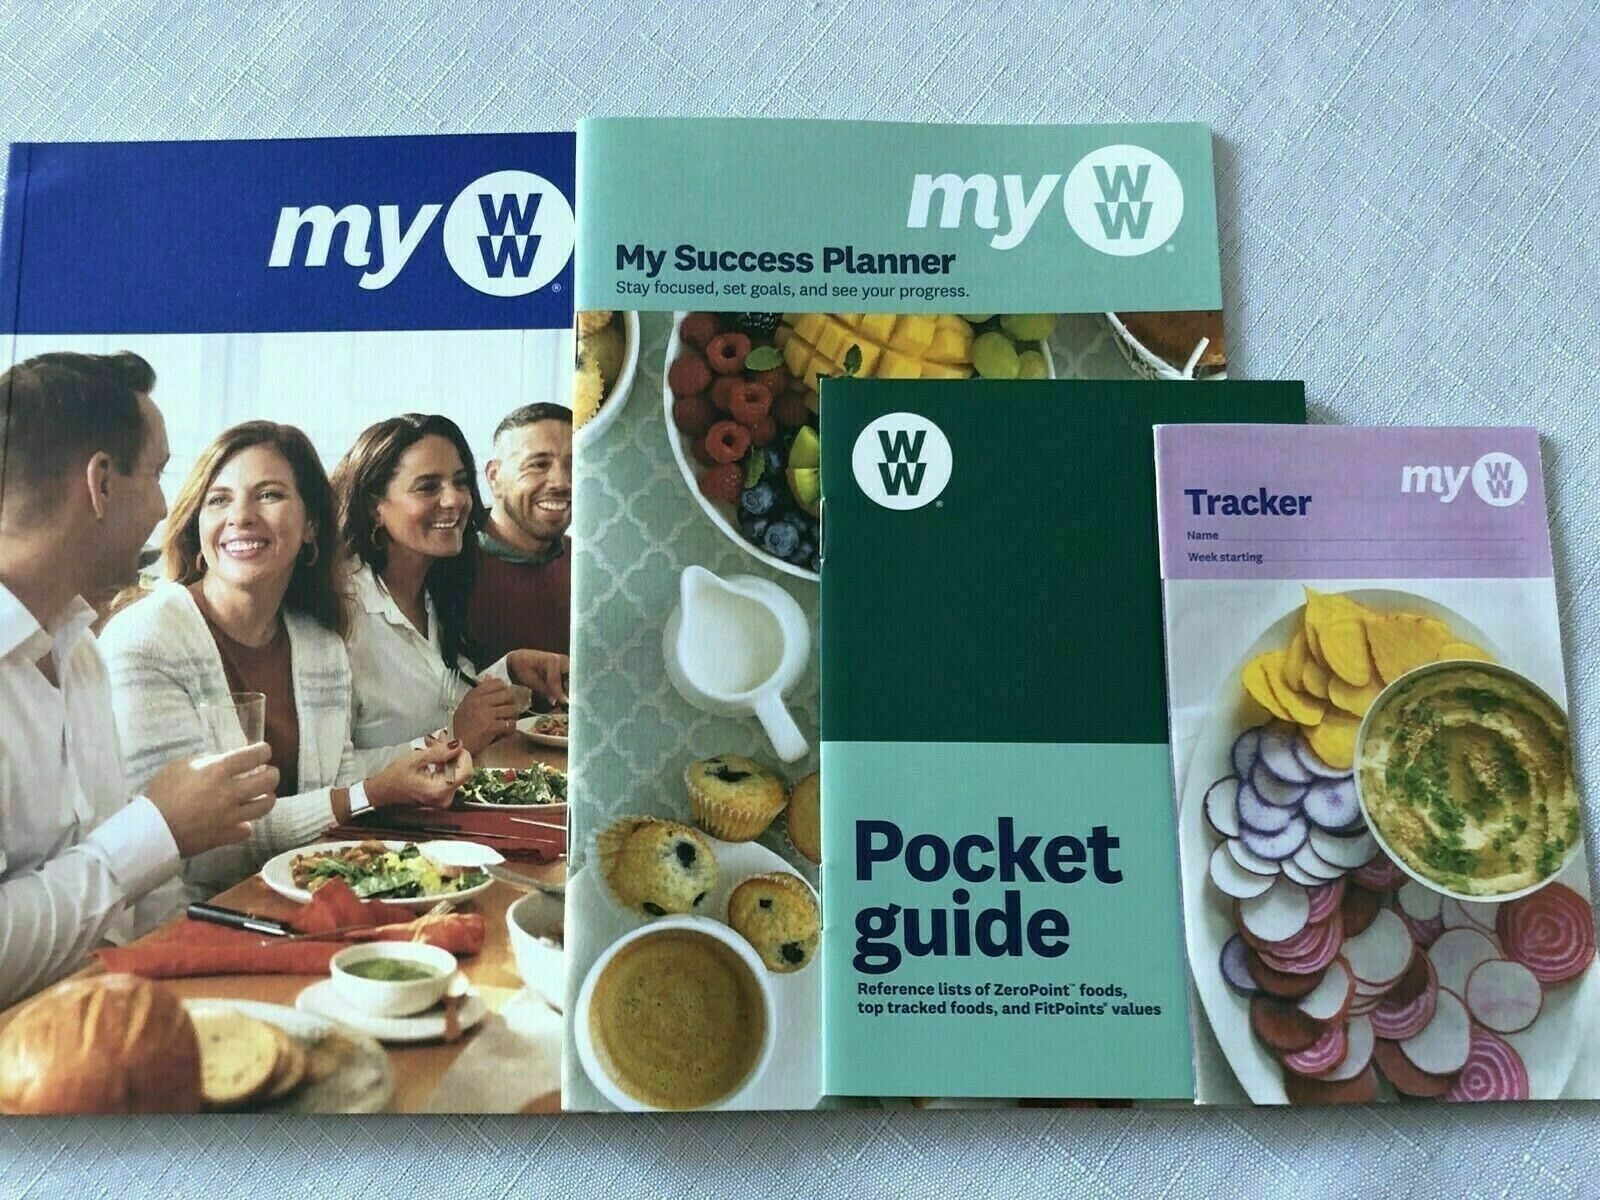 MY WW 2020 - NEW Food Plans - Green, Blue, Purple - Complete Guide Set NEW PLAN